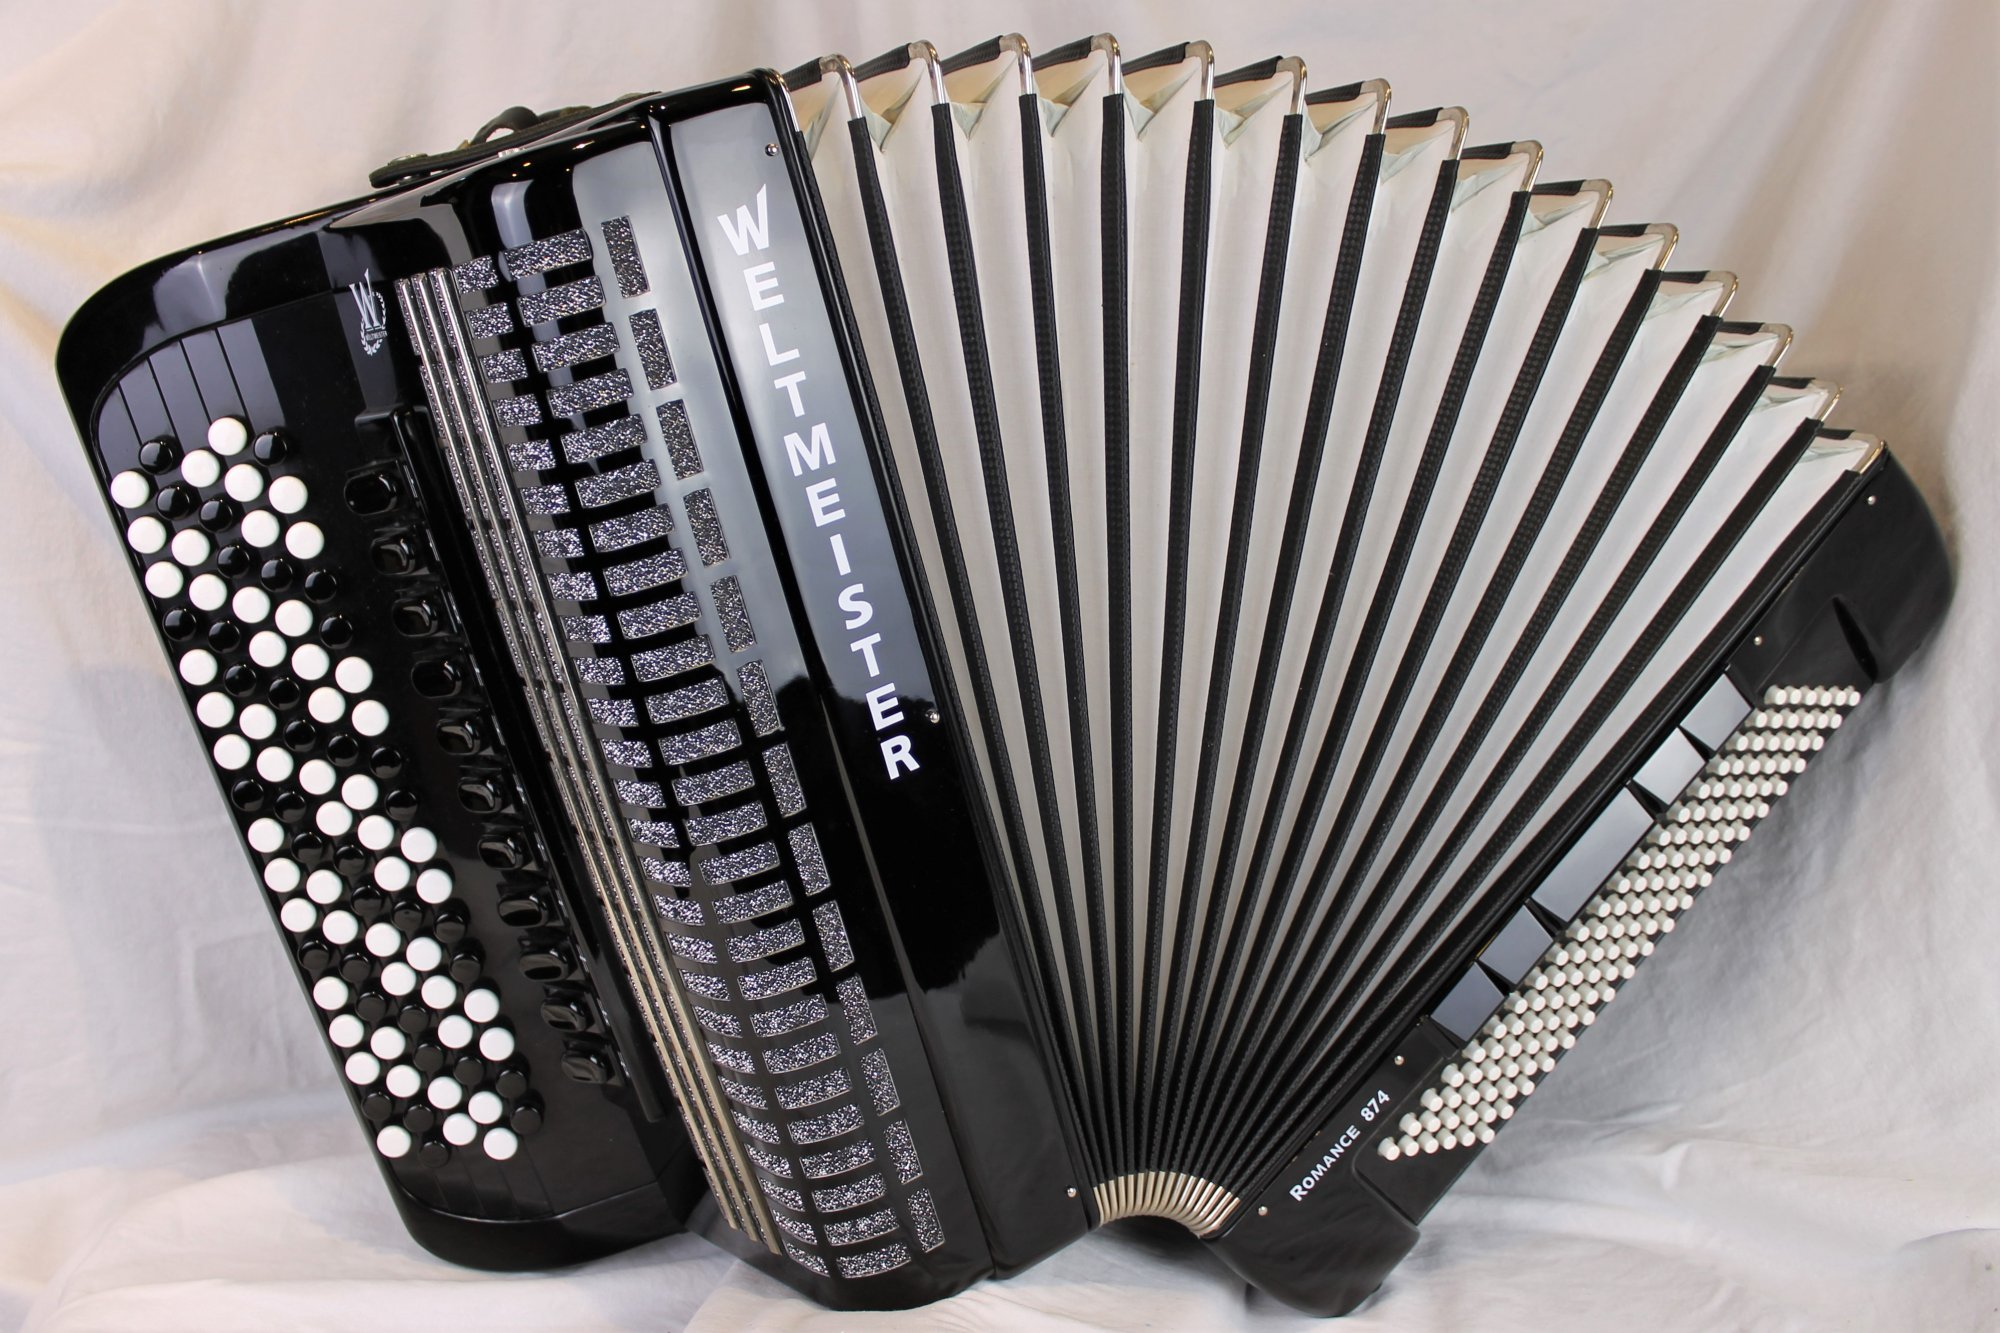 4877 - Certified Pre-Owned Black Weltmeister Romance 874 Chromatic Button Accordion B System LMMH 87 120